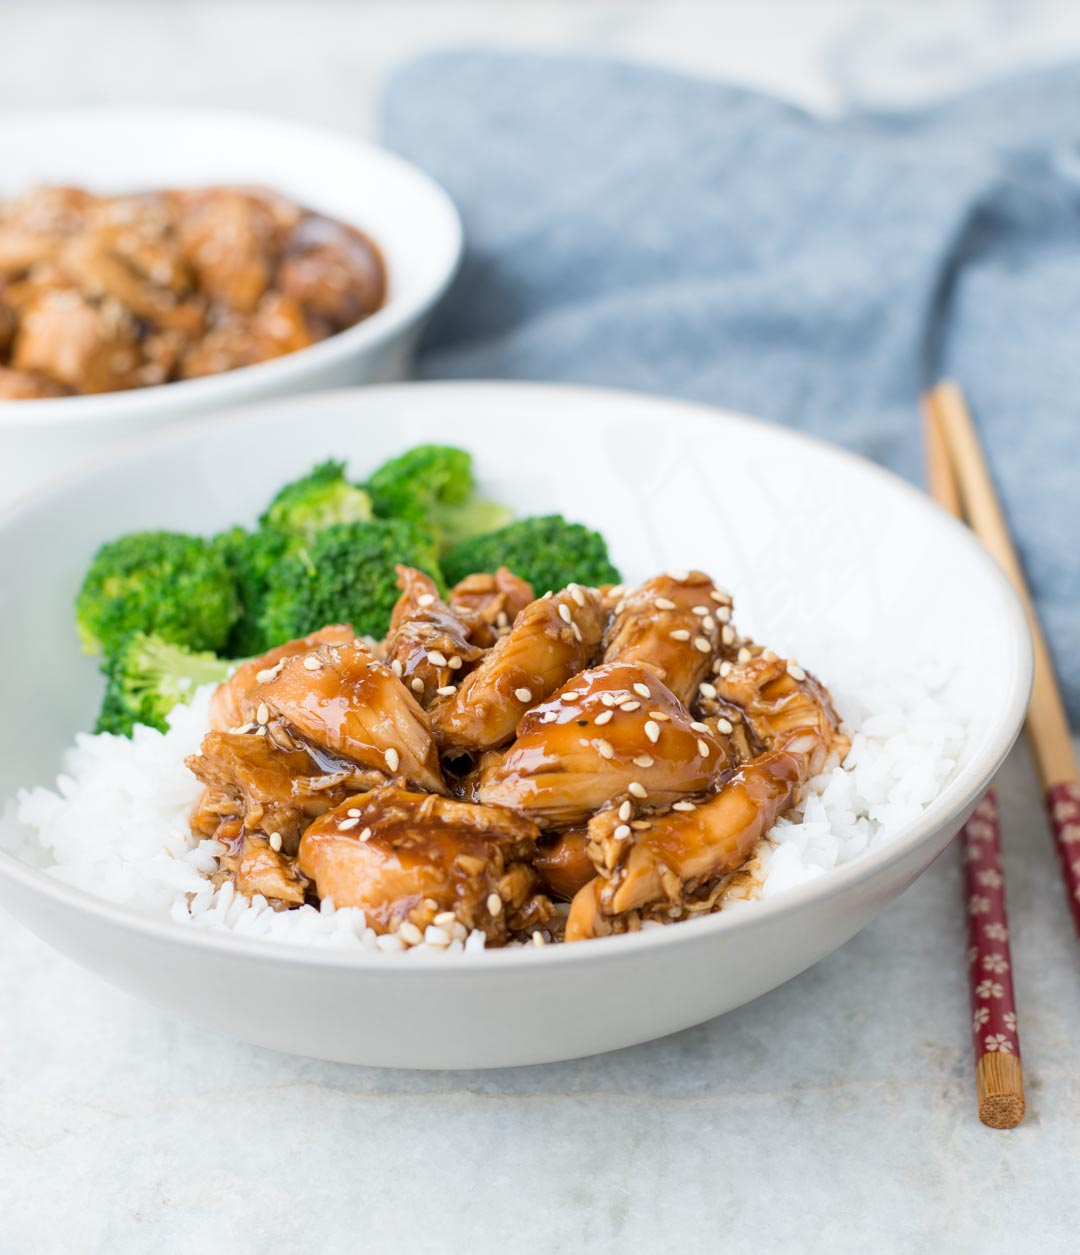 Instant Pot Honey Garlic Chicken with a delicious Sweet and Savoury Sauce takes only 15 minutes to make. This Instantpot Chicken breast is perfectly moist and tender.